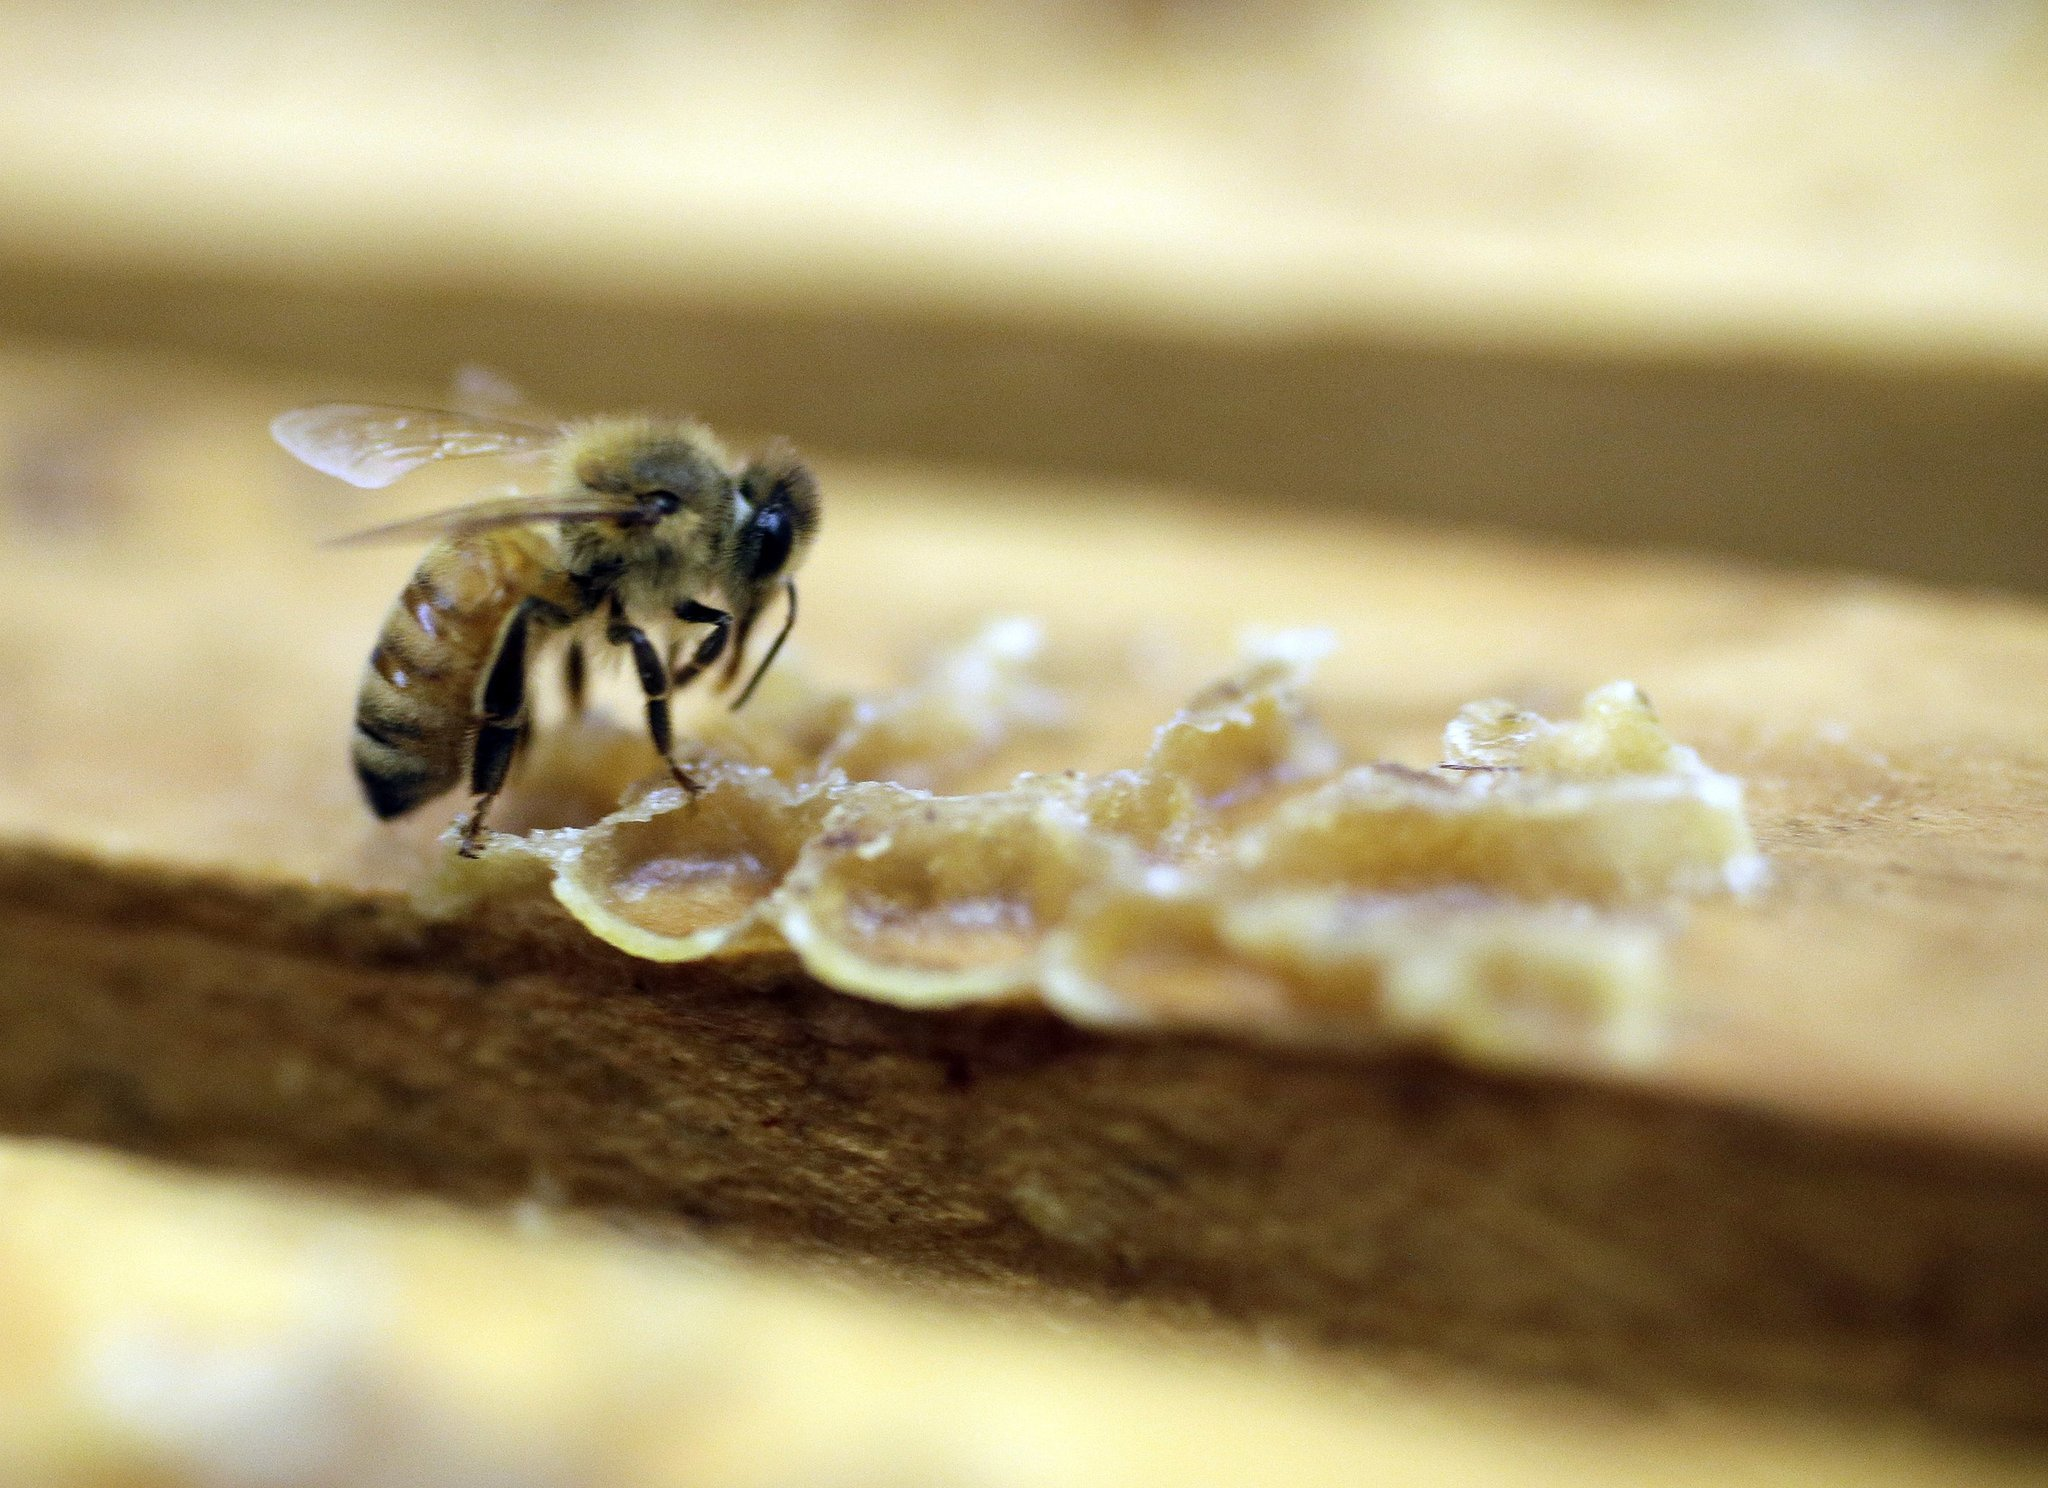 Scientists say spread of virus that's killing honeybees 'a man-made thing'